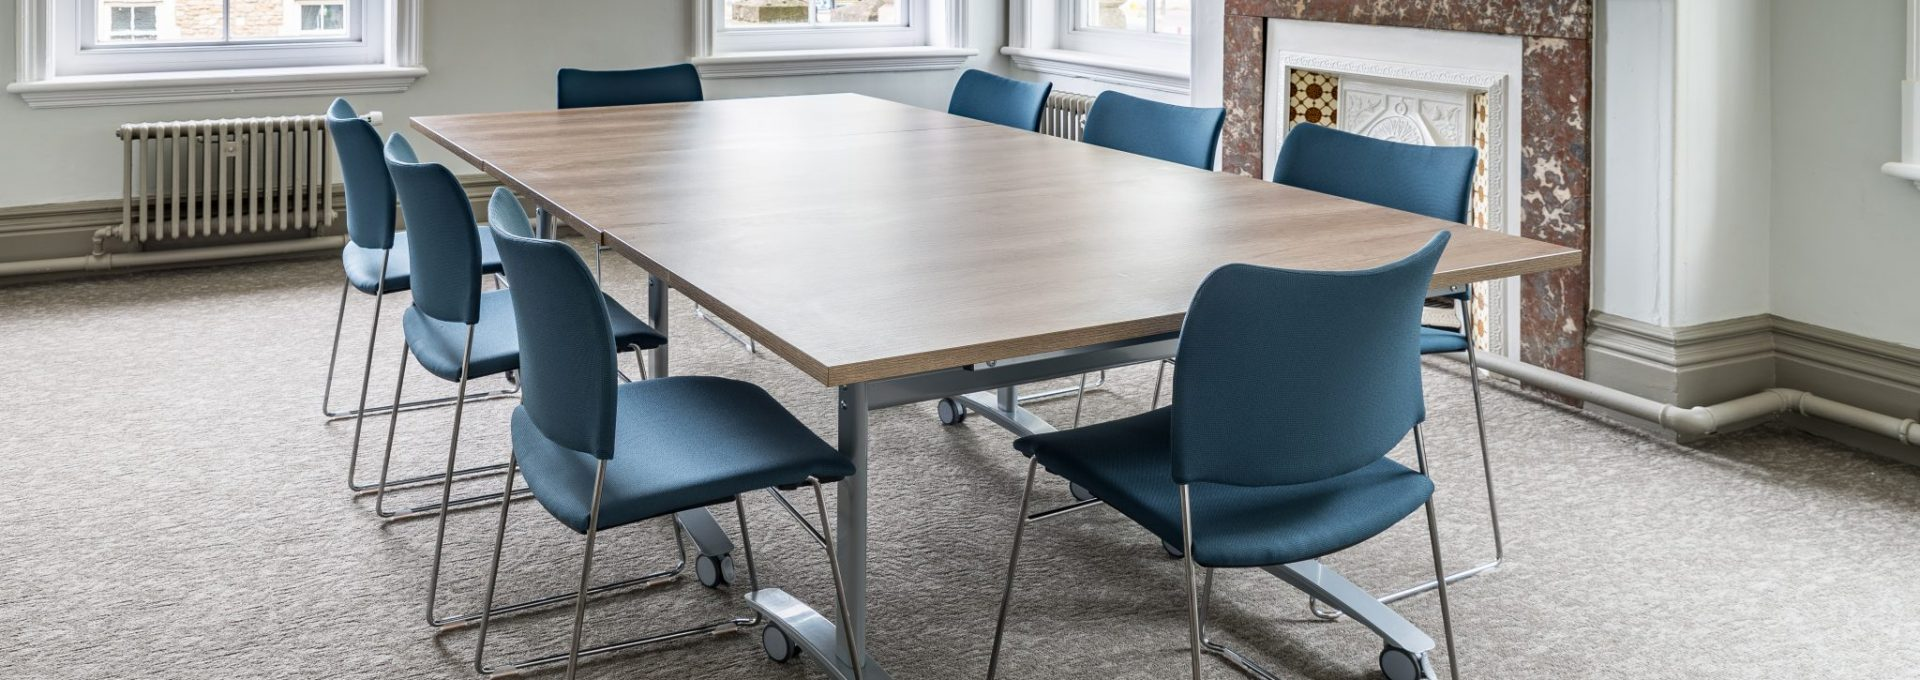 Photo of a large table with chairs around it at Frome Town Hall's meeting room.